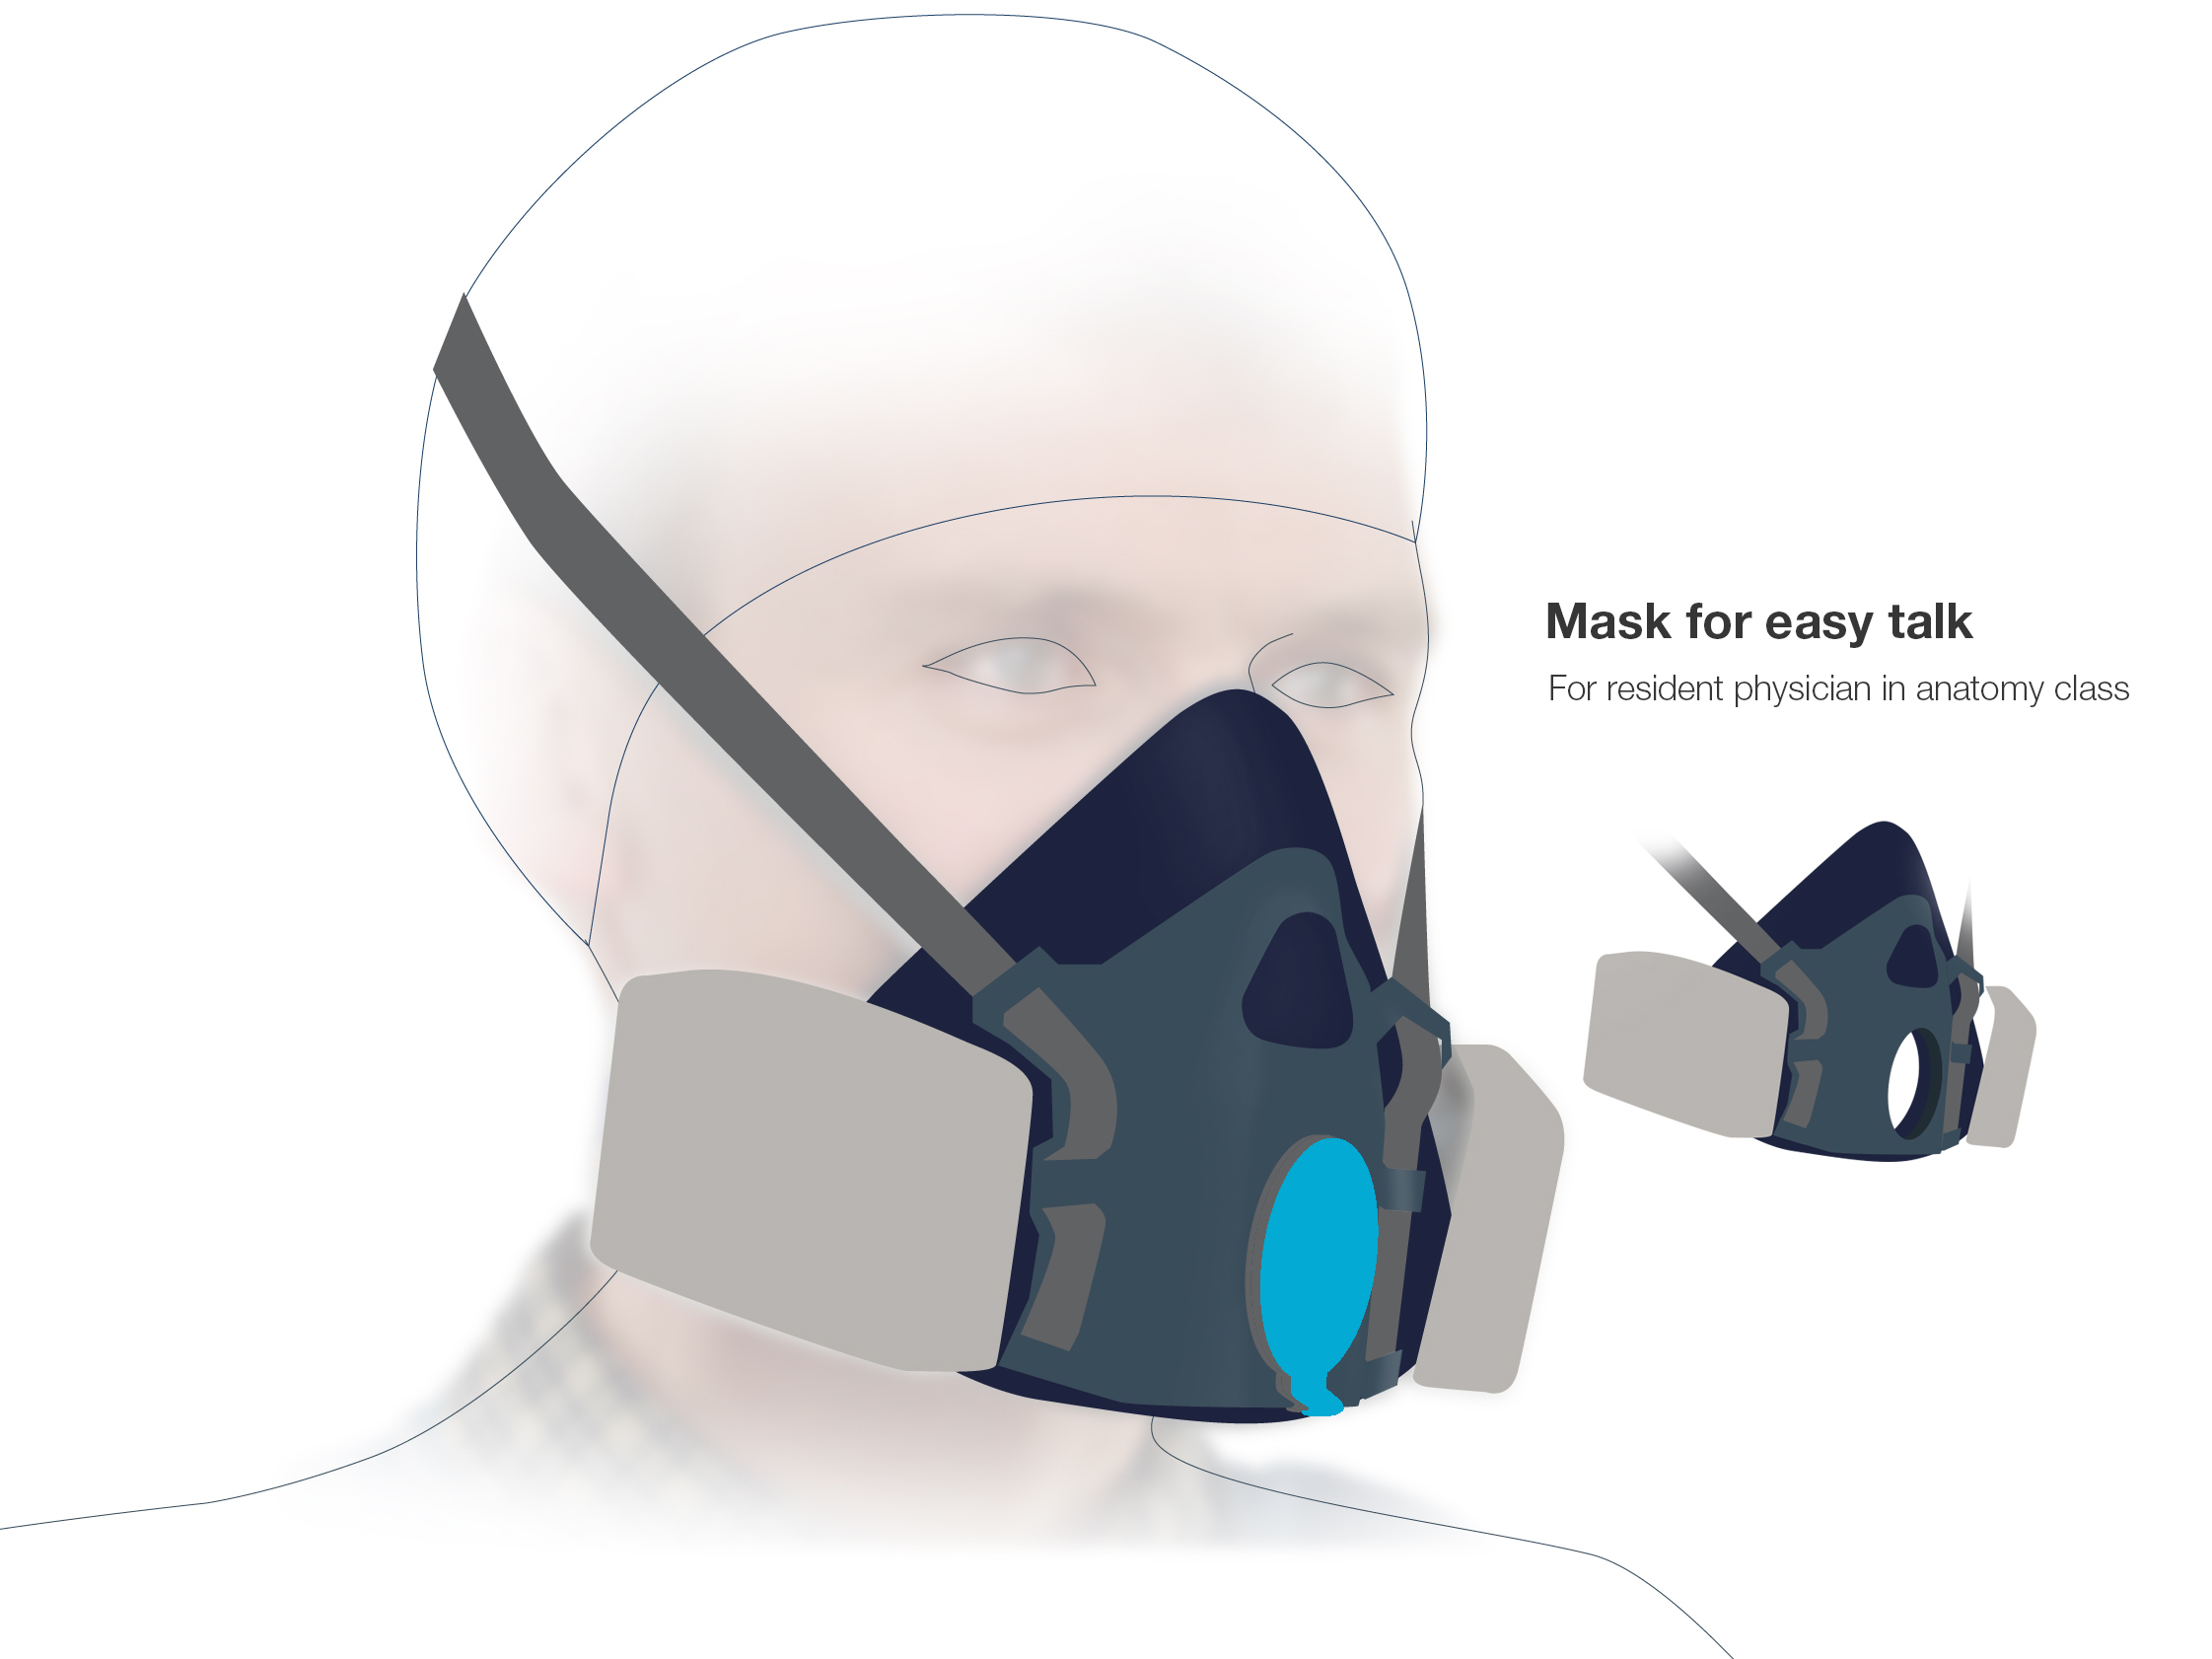 Mask for easy talk